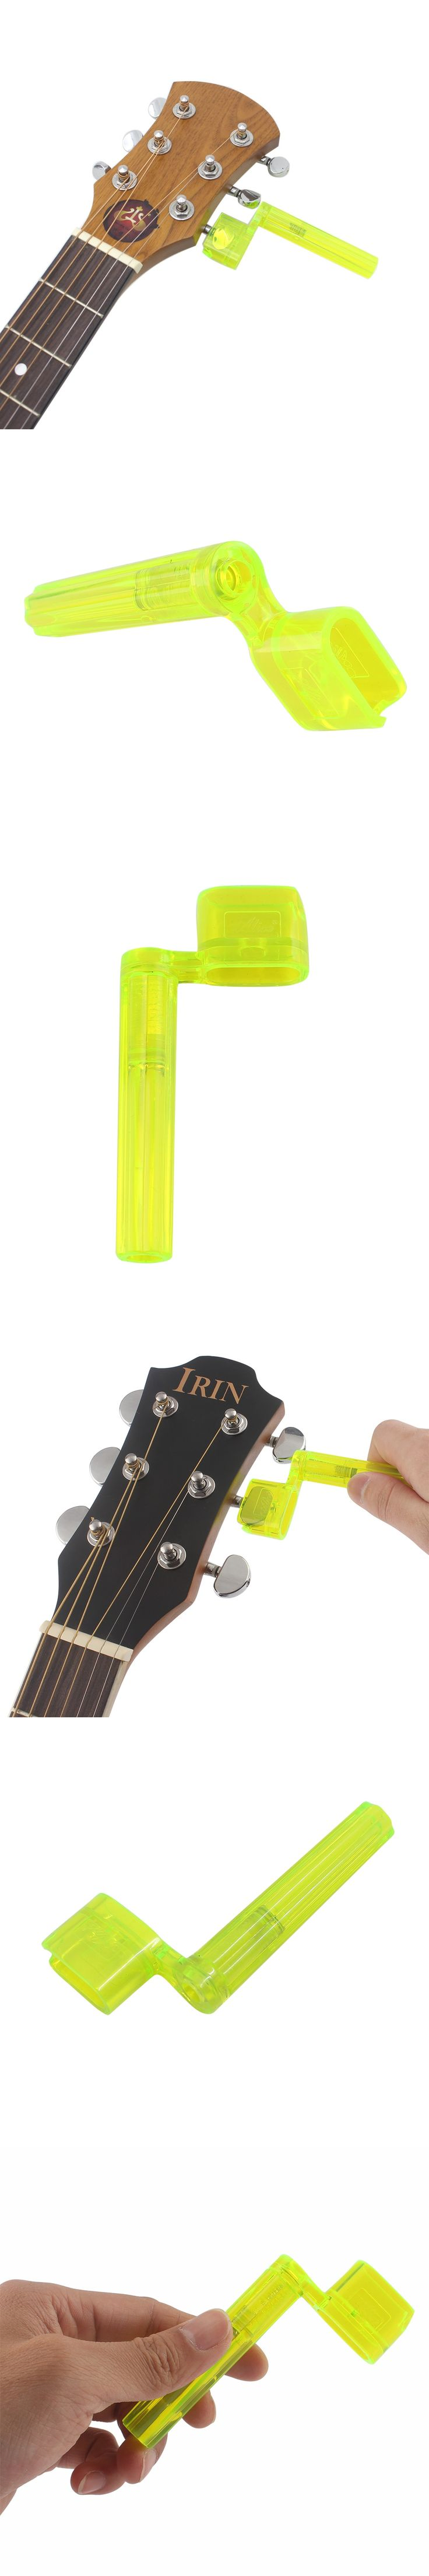 IRIN A009P Plastic Guitar Grover Guitar Bridge Pins & Tuning Peg Remover String Winder Electric Guitar